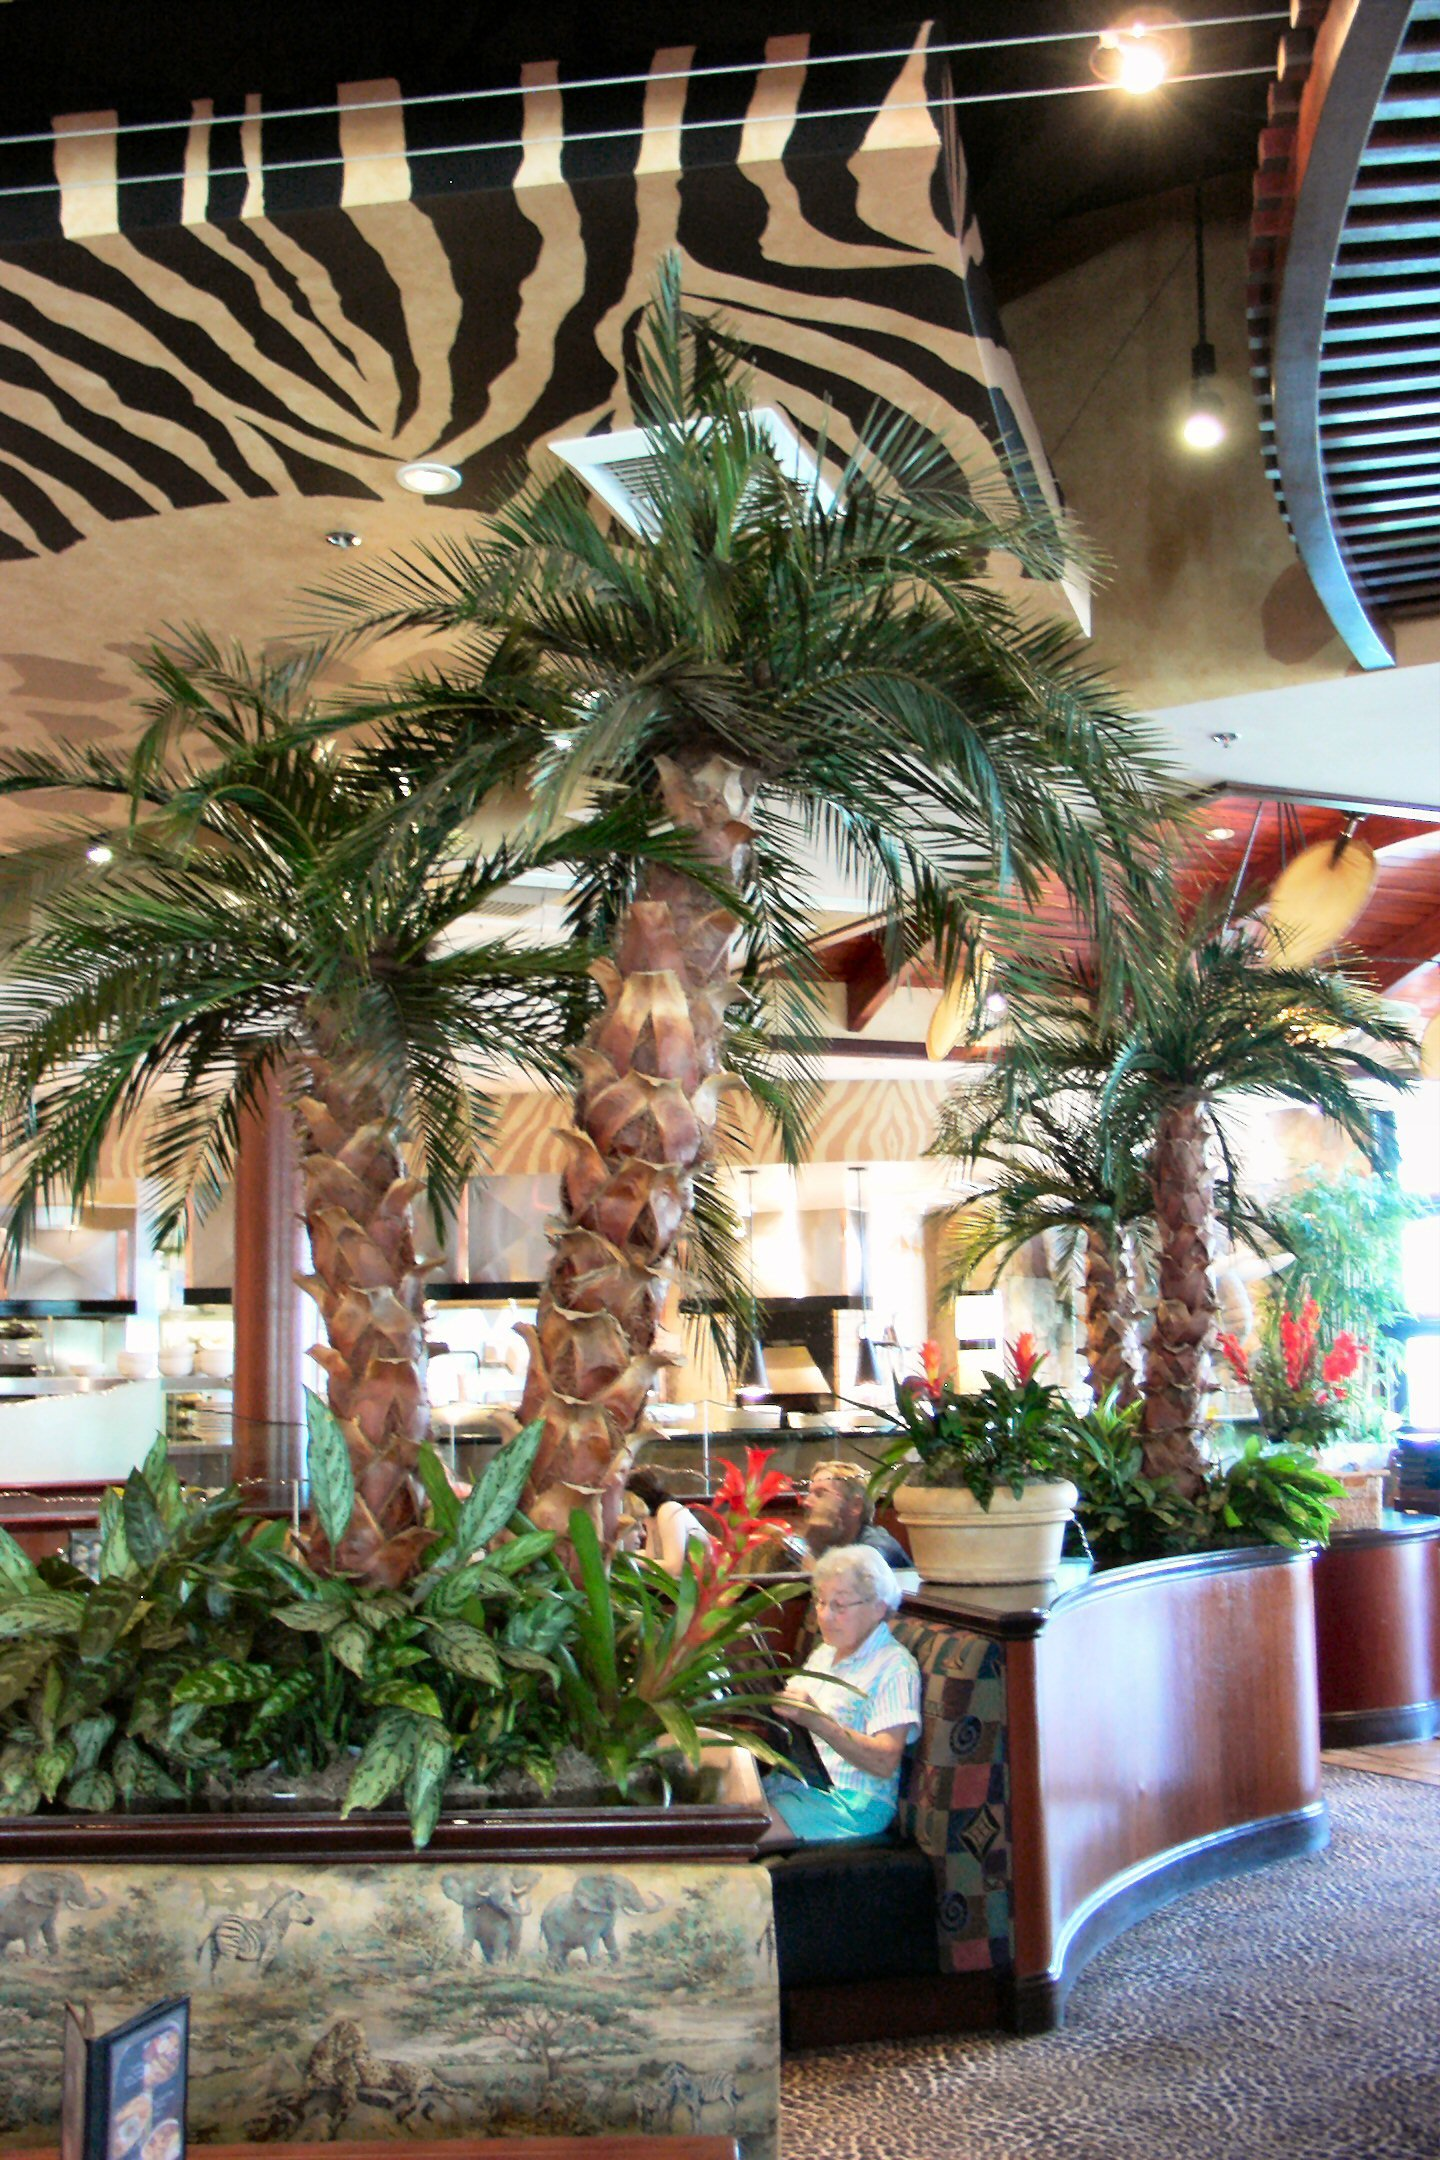 Artificial Trees For Interior Design emejing fake indoor tree images interior  design ideas Low Cost Home